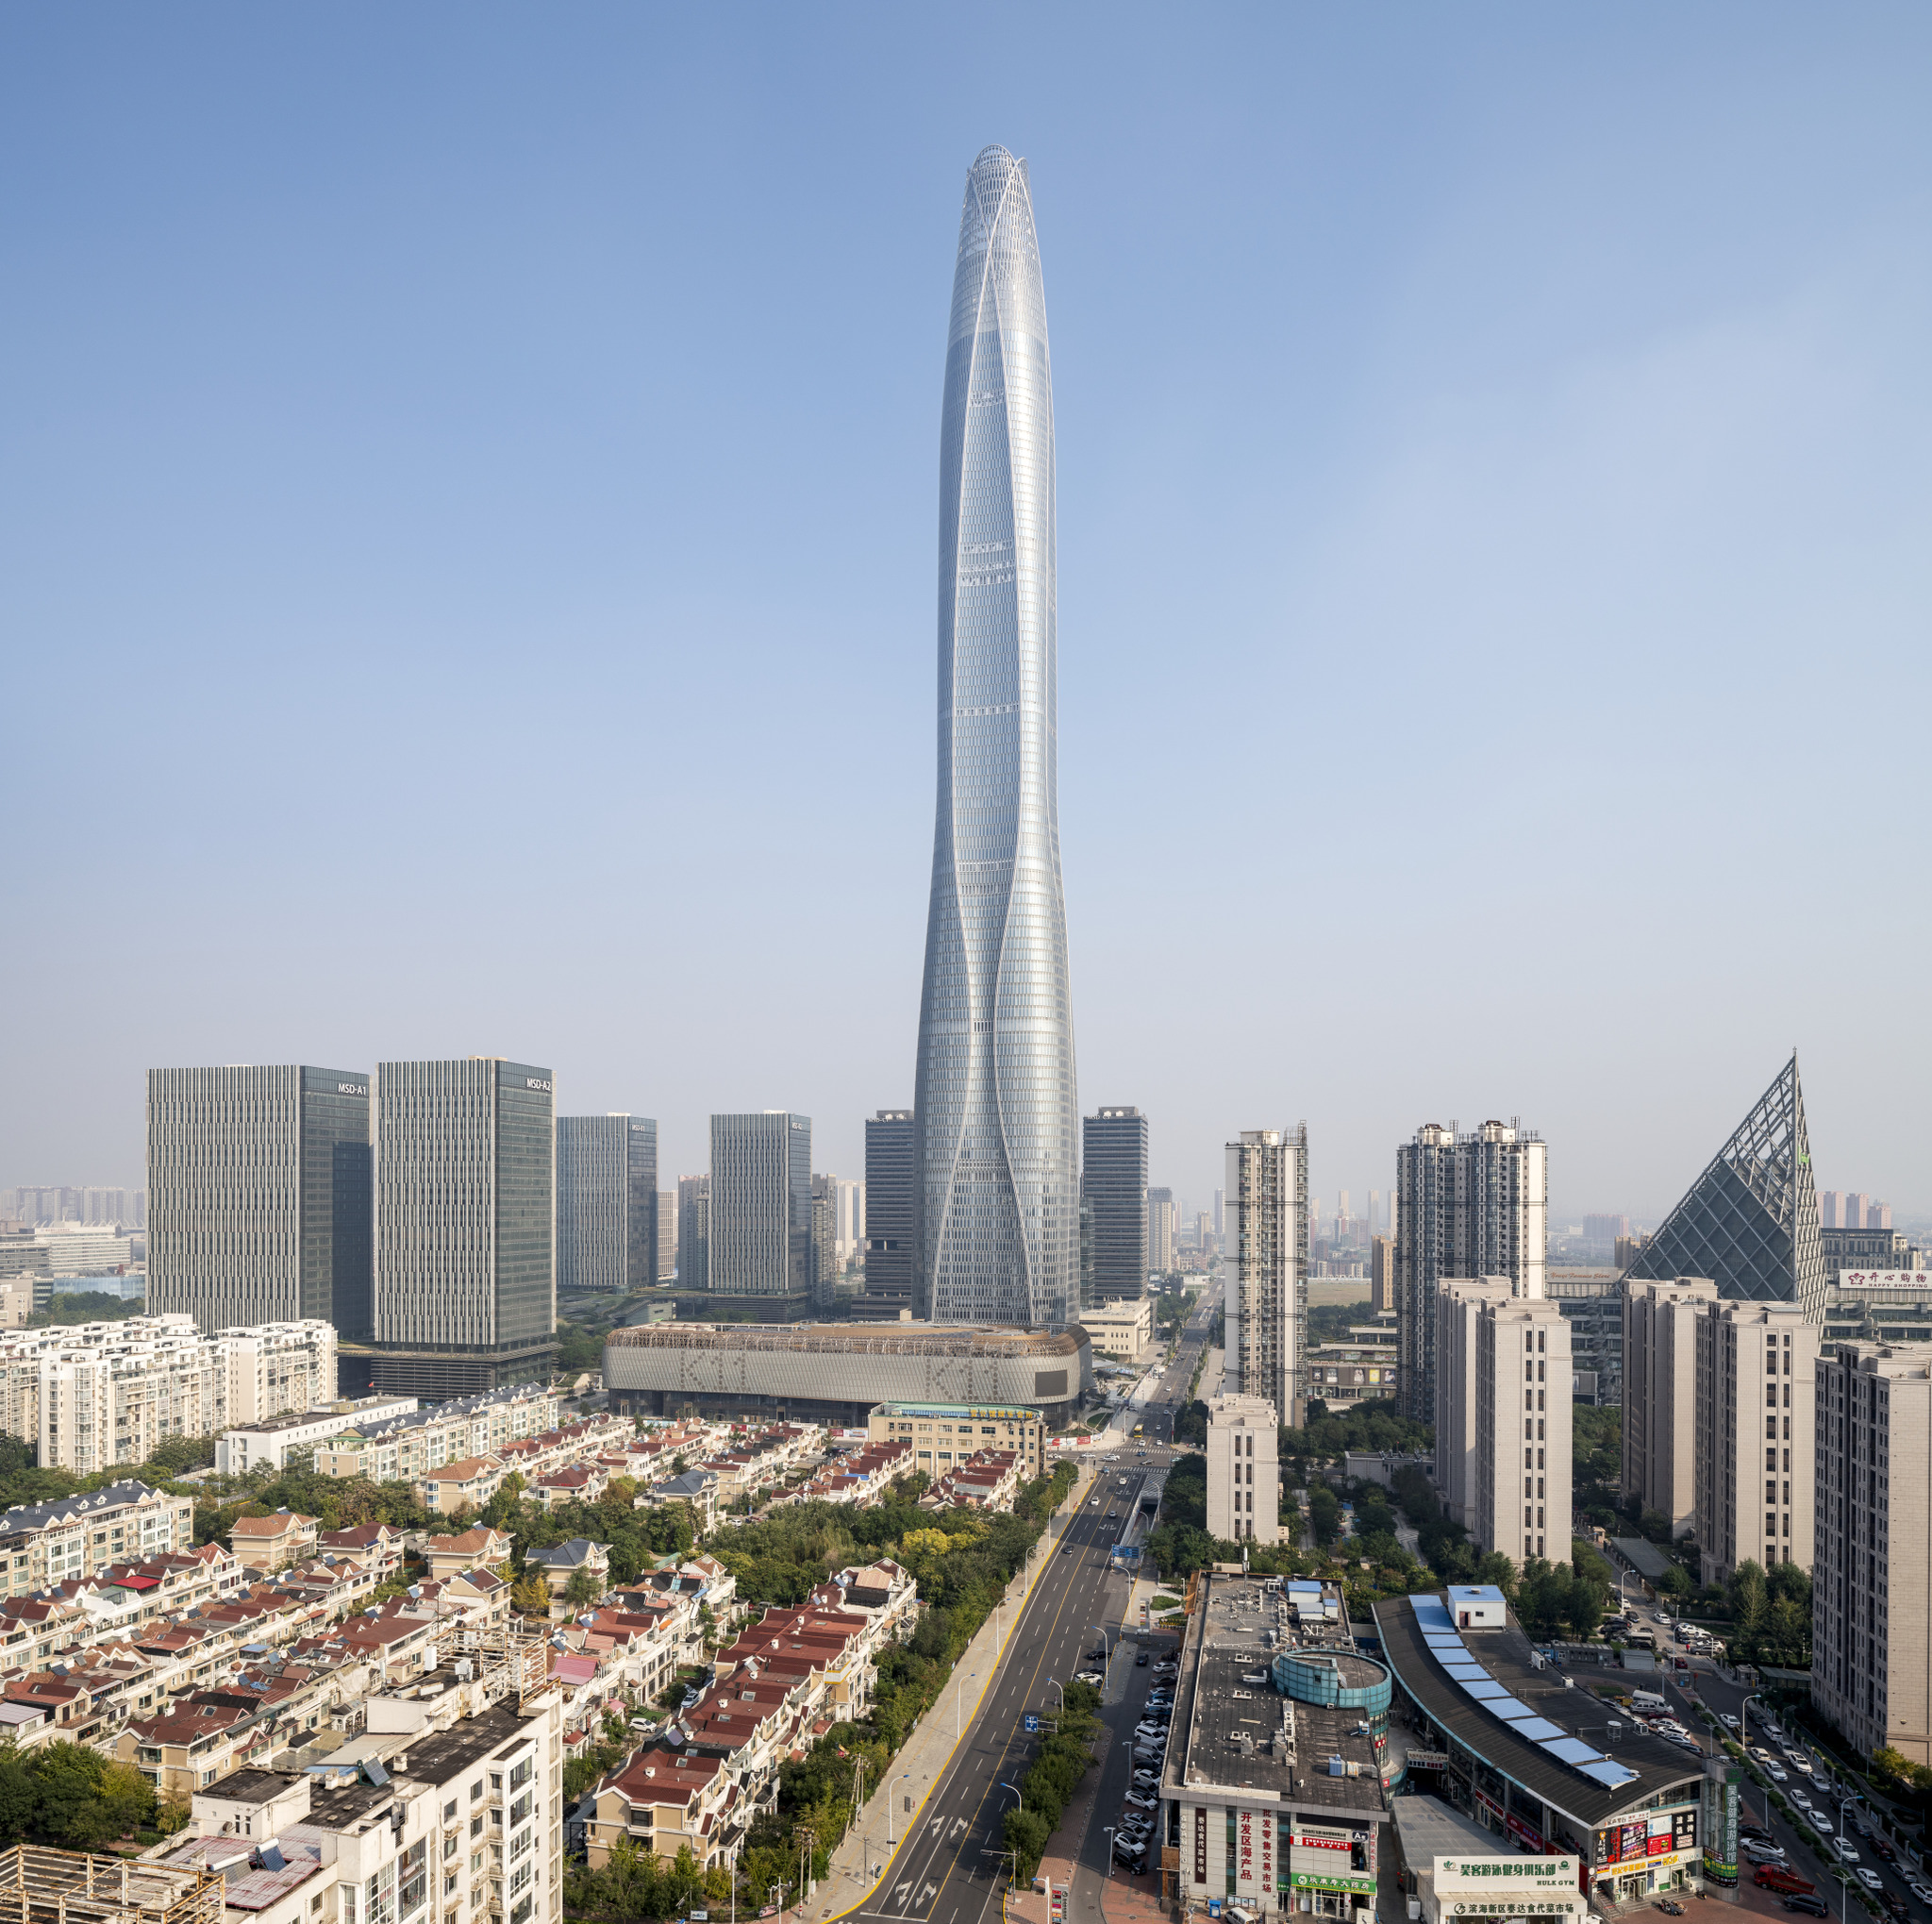 Glastory: Tianjin CTF Finance Center